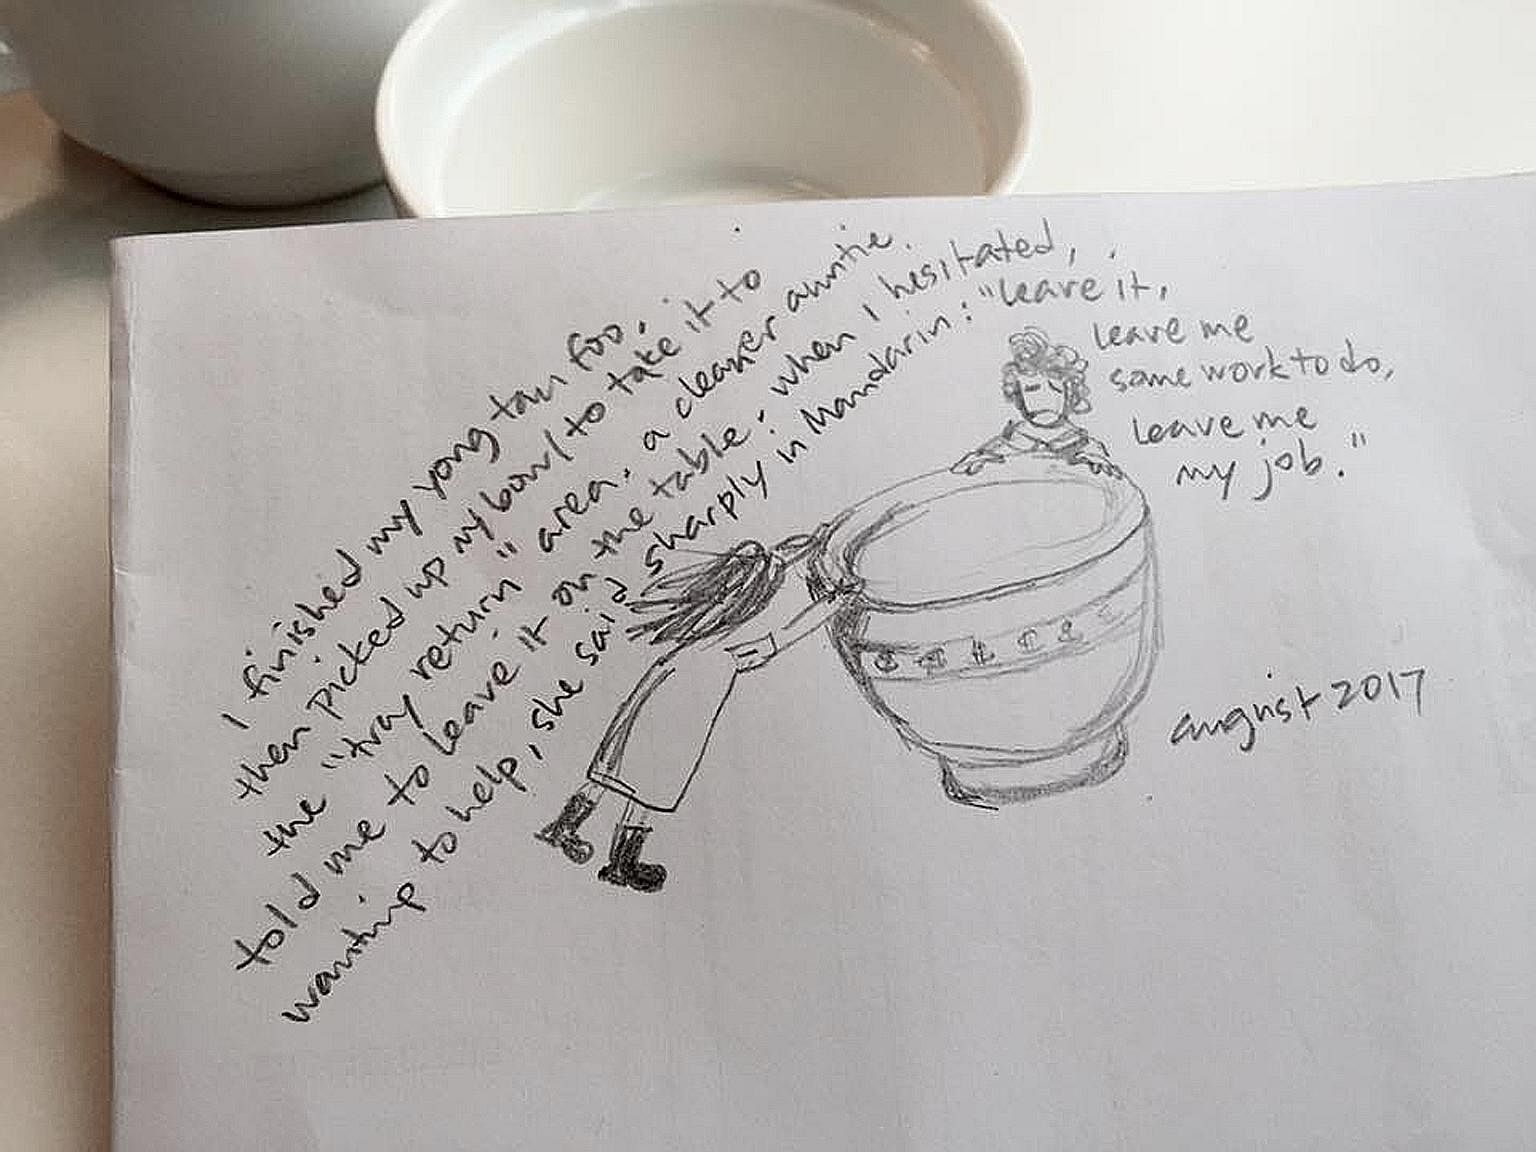 A doodle by the writer, who understood a cleaner auntie's urge to hold on to her rice bowl. The writer was picking up a bowl to take it to the tray-return area when auntie told her not to do so. She probably thought her job was under threat from proc